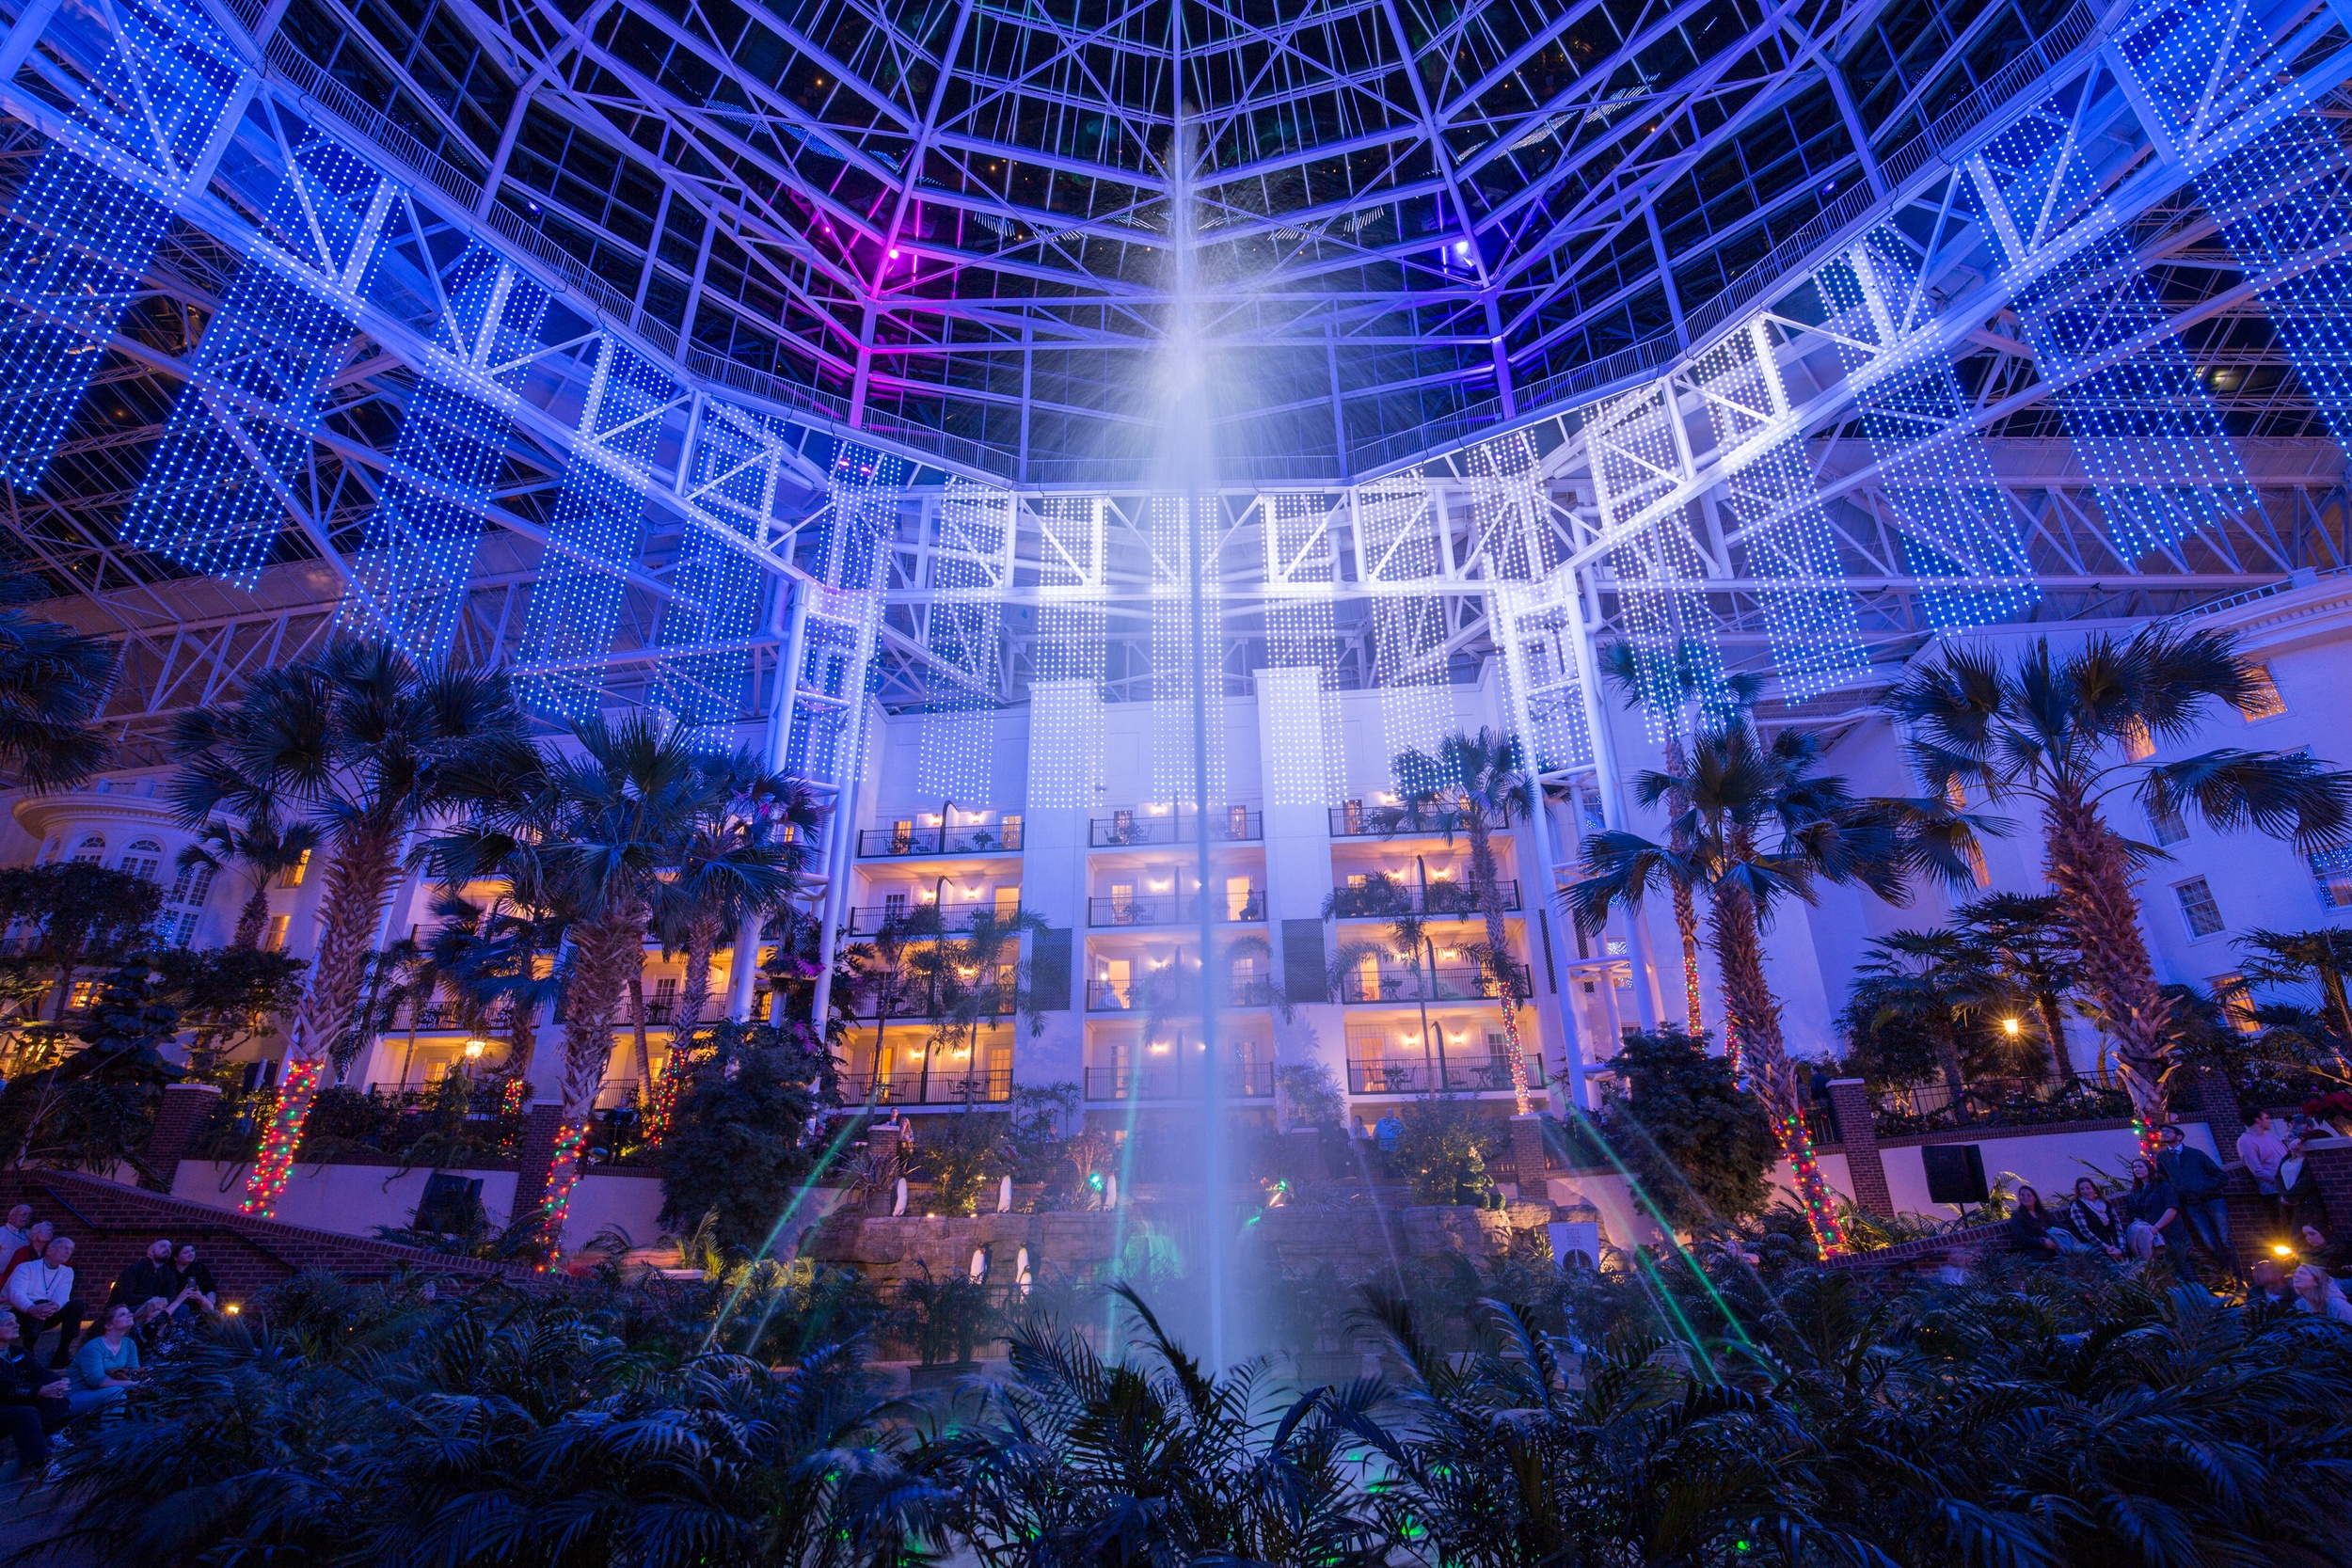 Delta Fountain Show at Gaylord Opryland